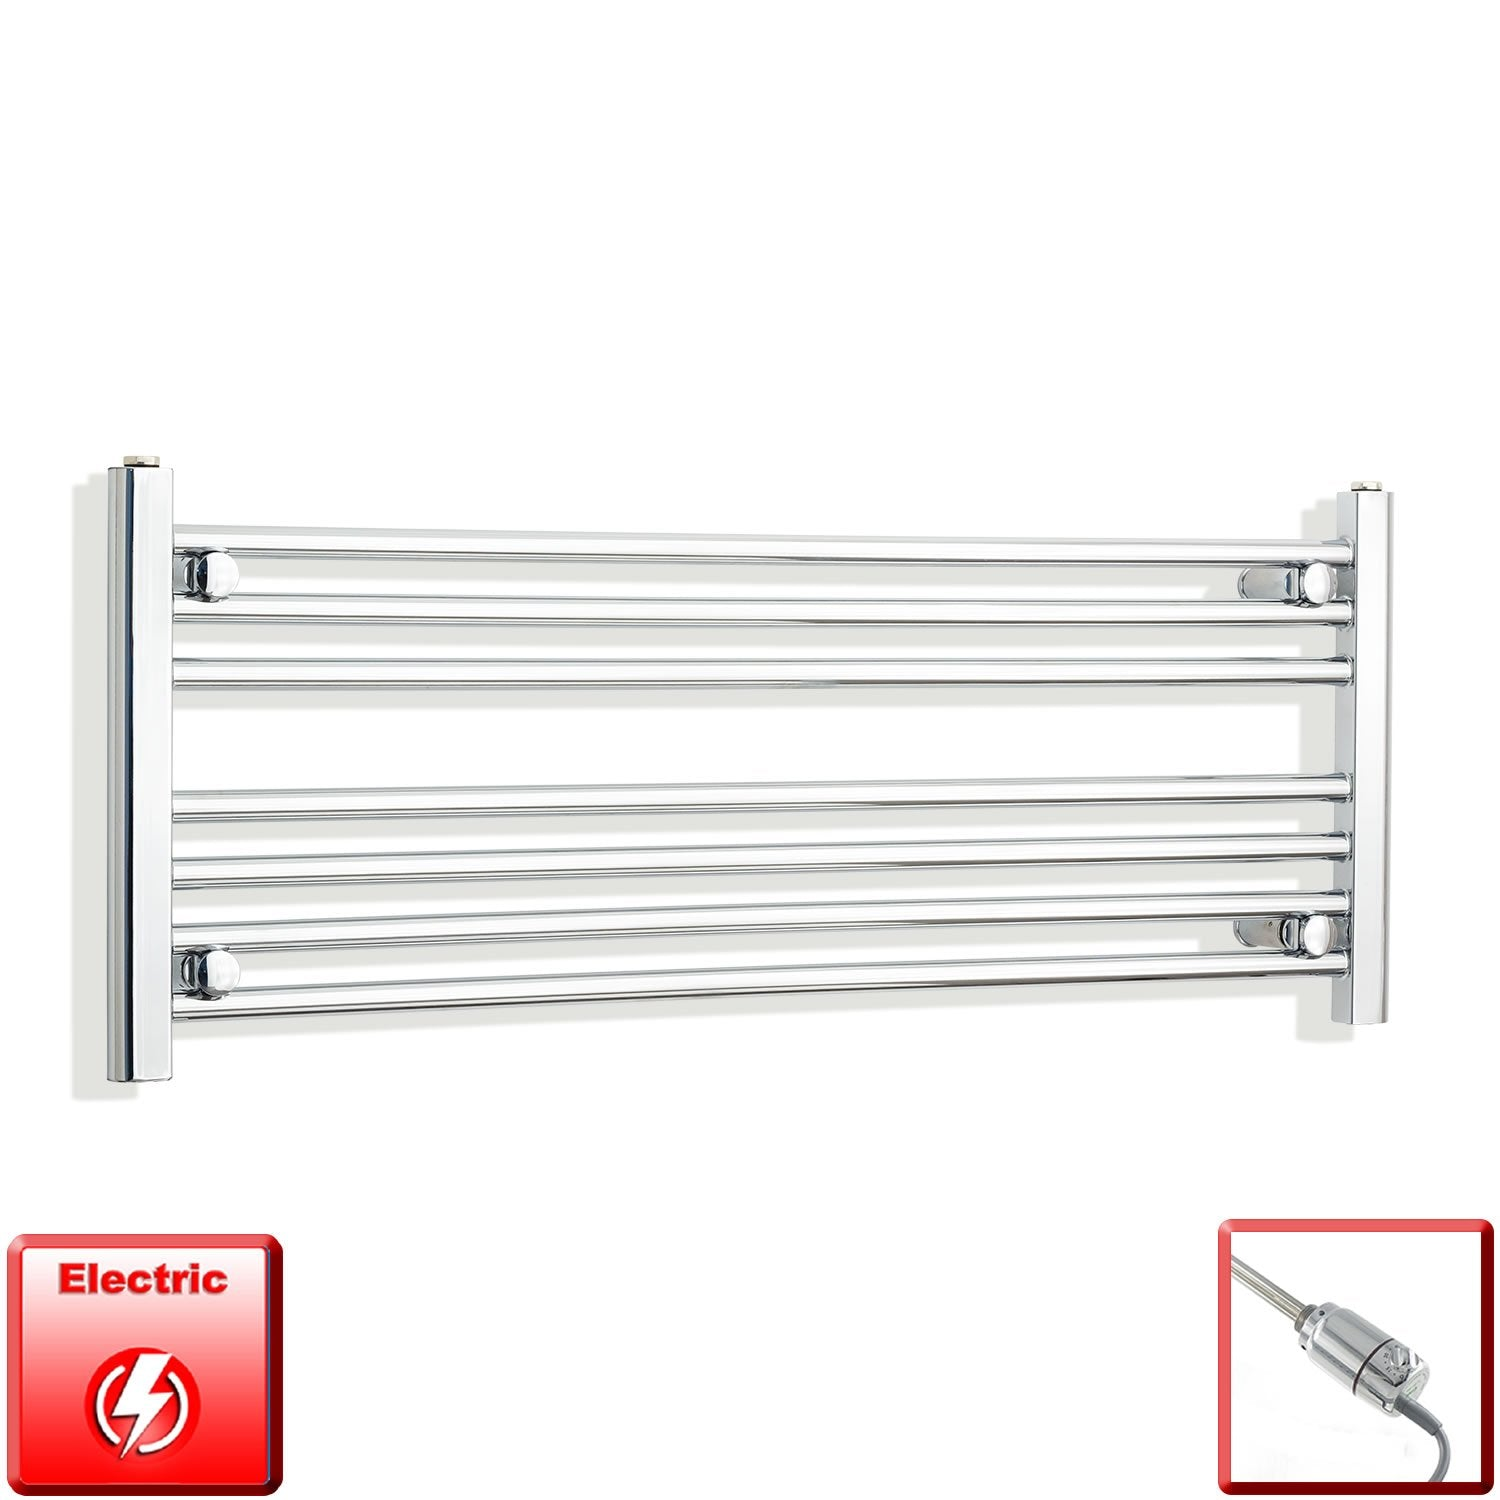 1100mm Wide 400mm High Flat Chrome Pre-Filled Electric Heated Towel Rail Radiator HTR,GT Thermostatic